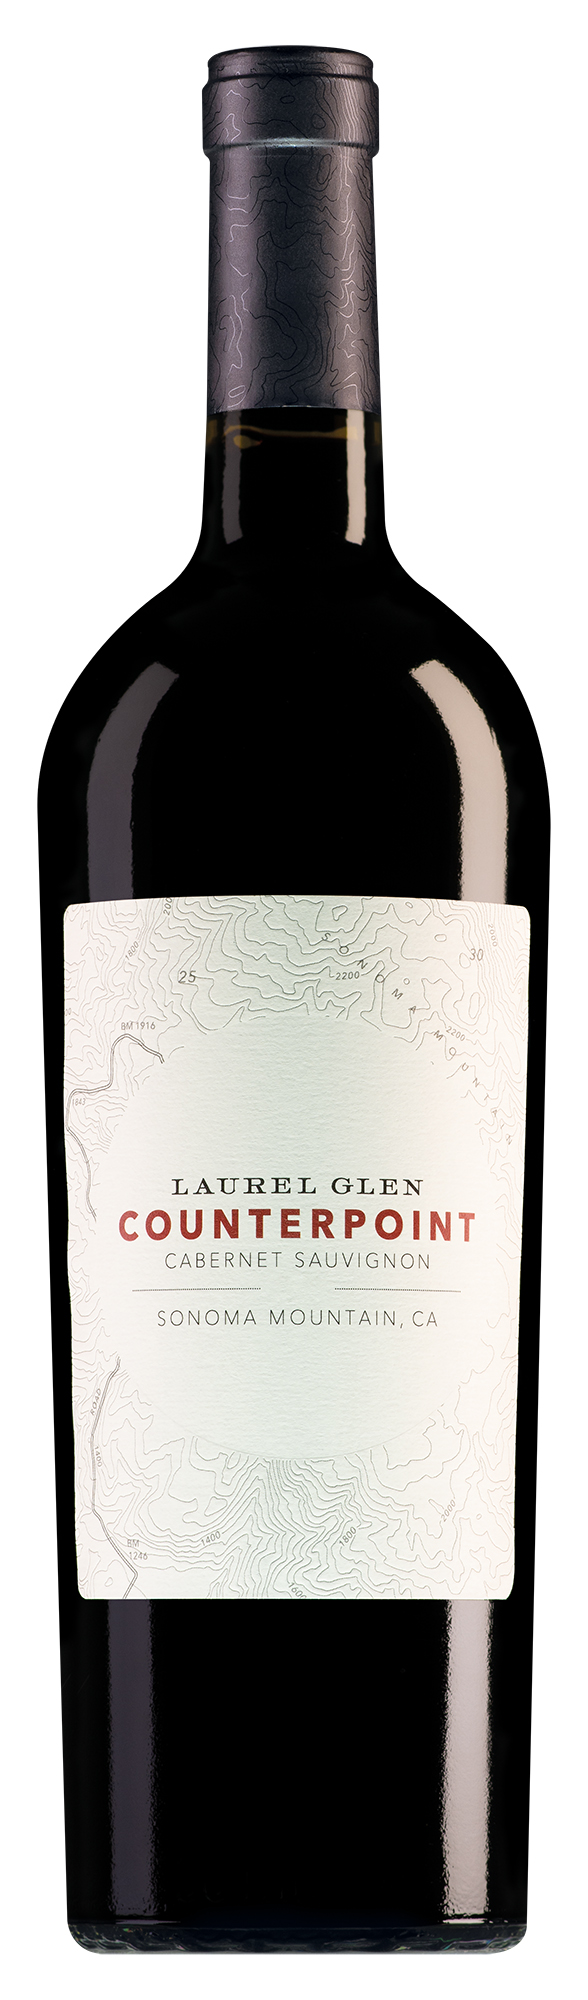 Laurel Glen Sonoma Mountain Counterpoint Cabernet Sauvignon